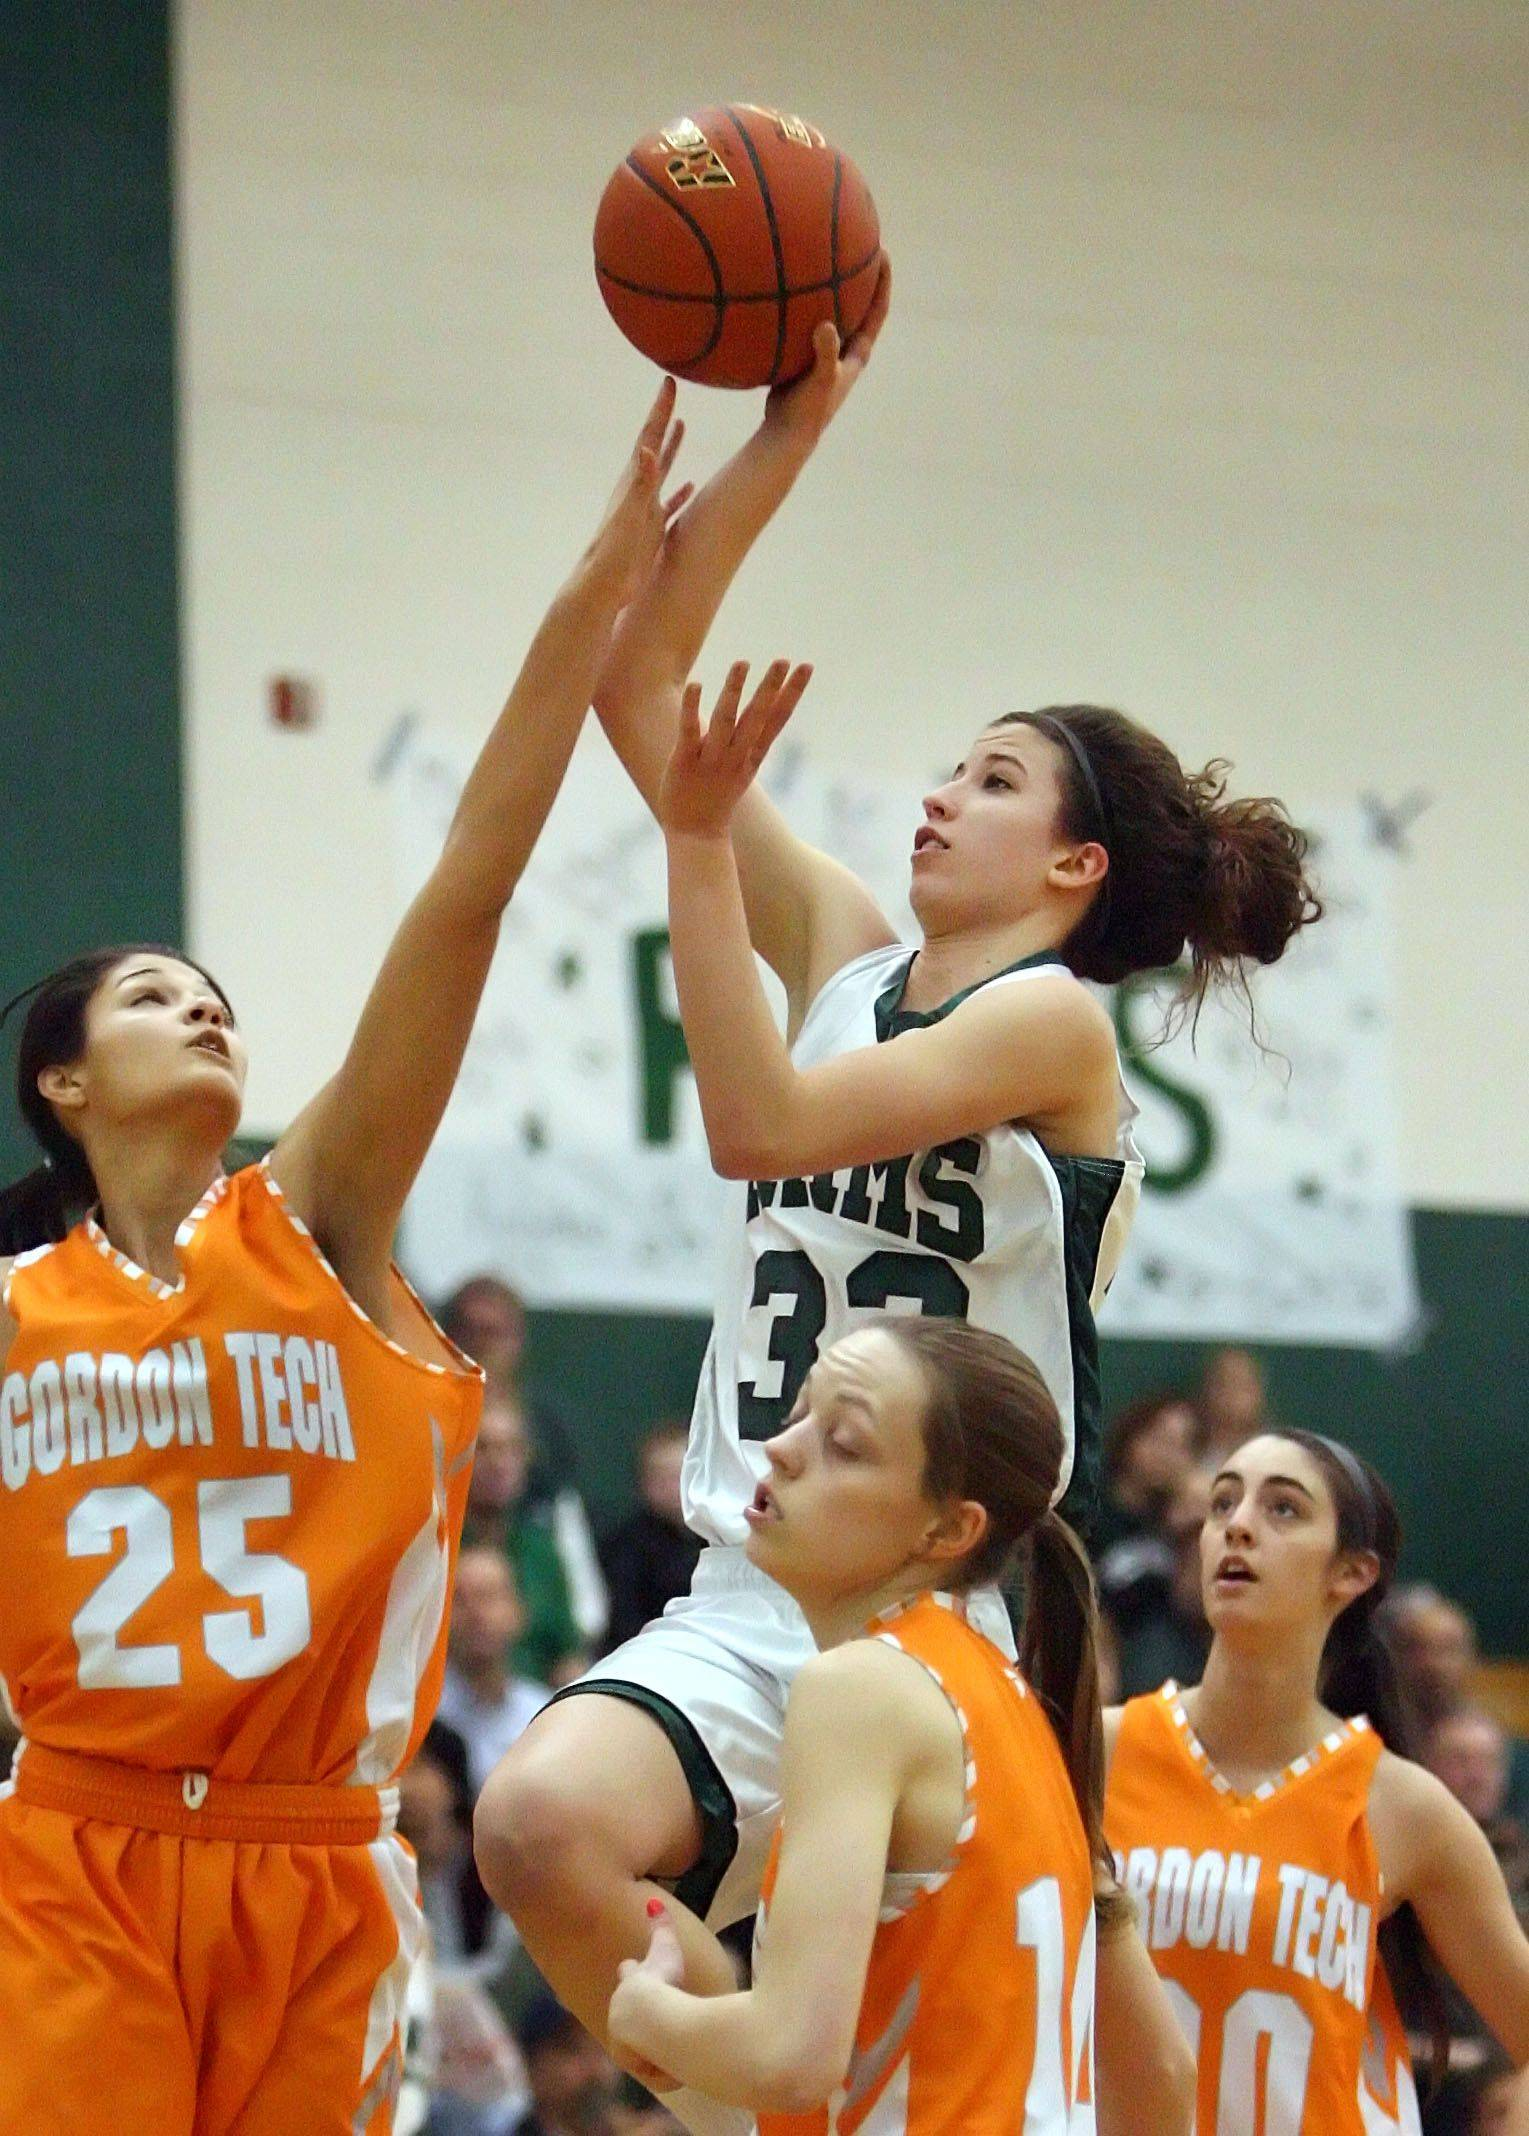 Grayslake Central rolls to victory